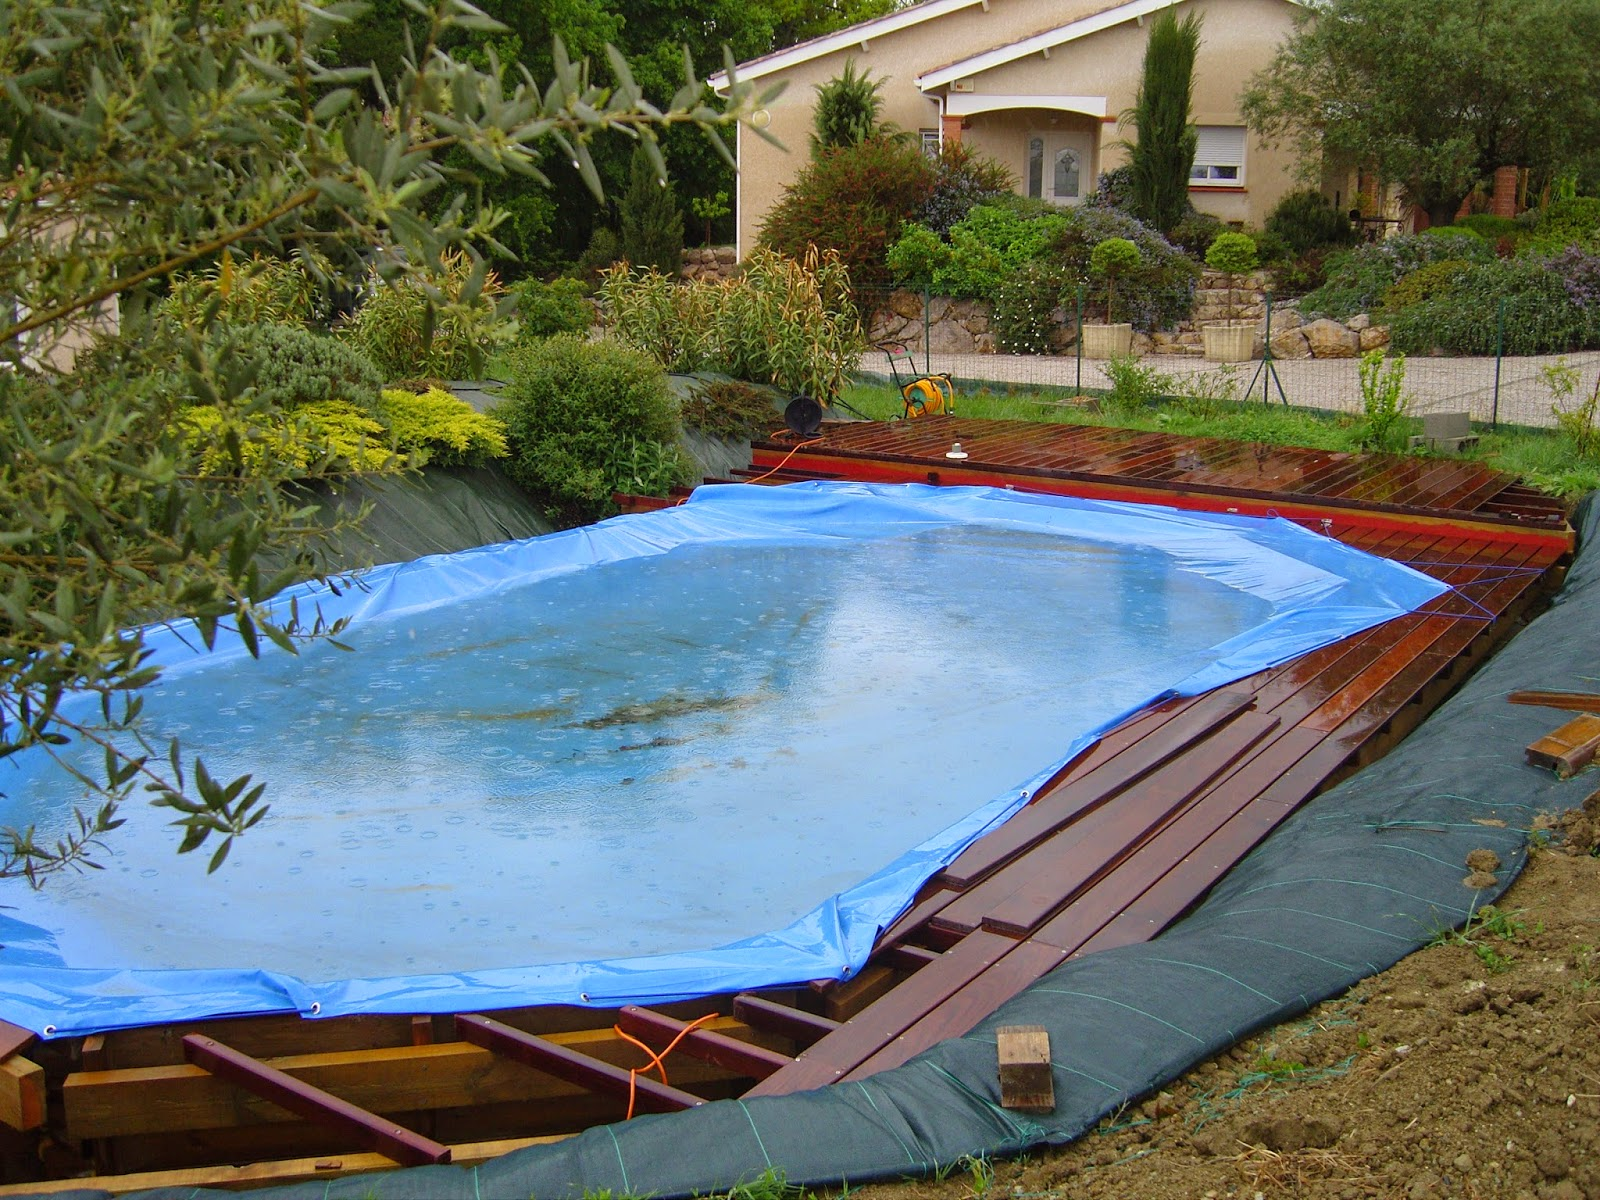 piscine bois enterree pourrie